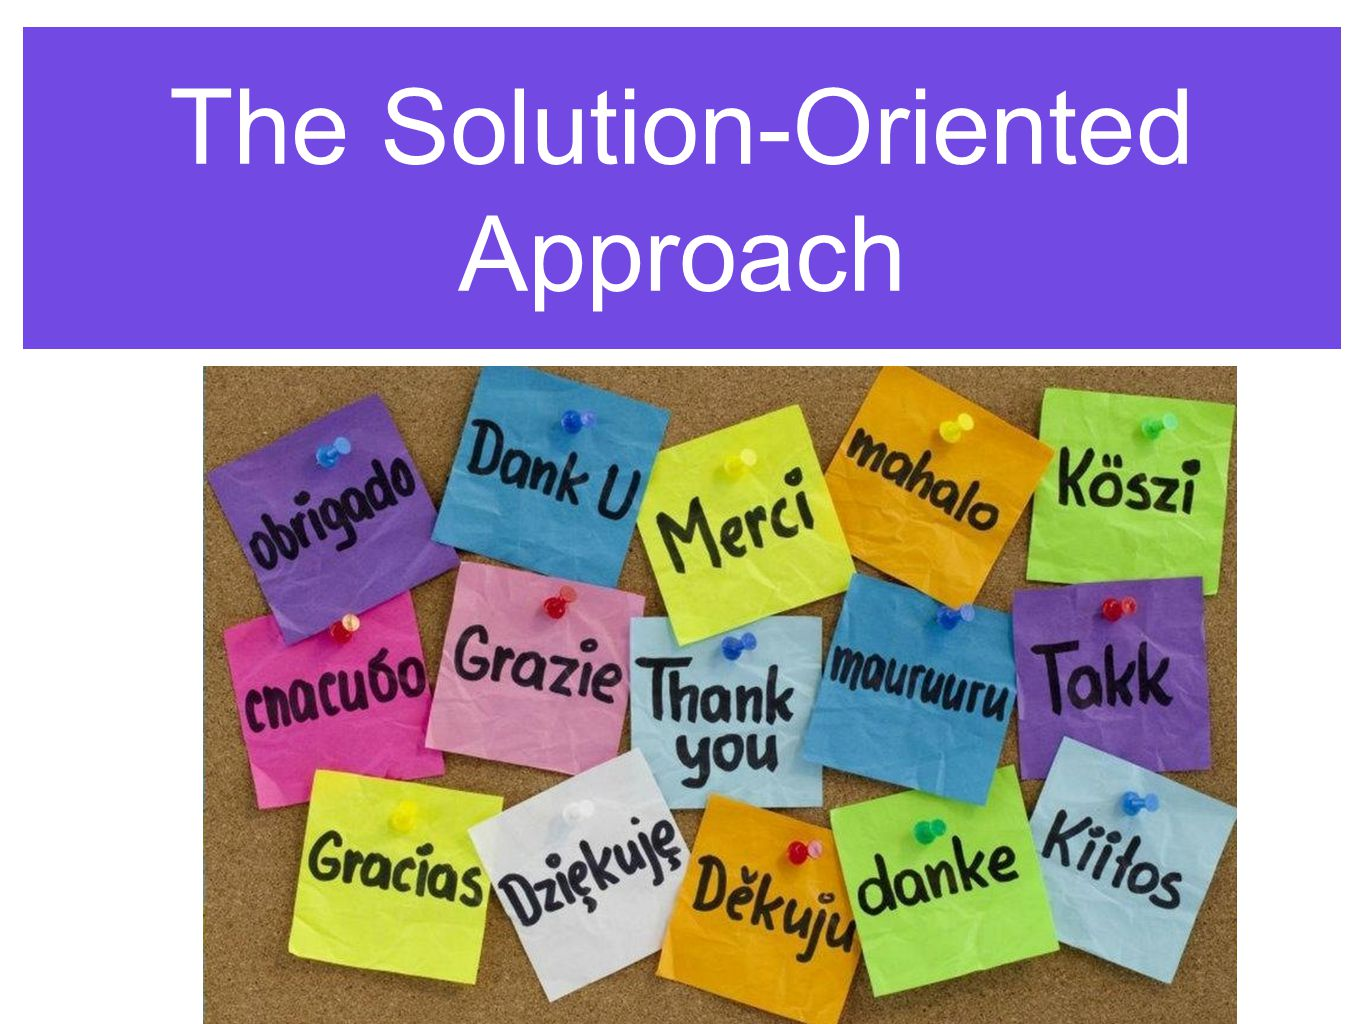 The Solution-Oriented Approach